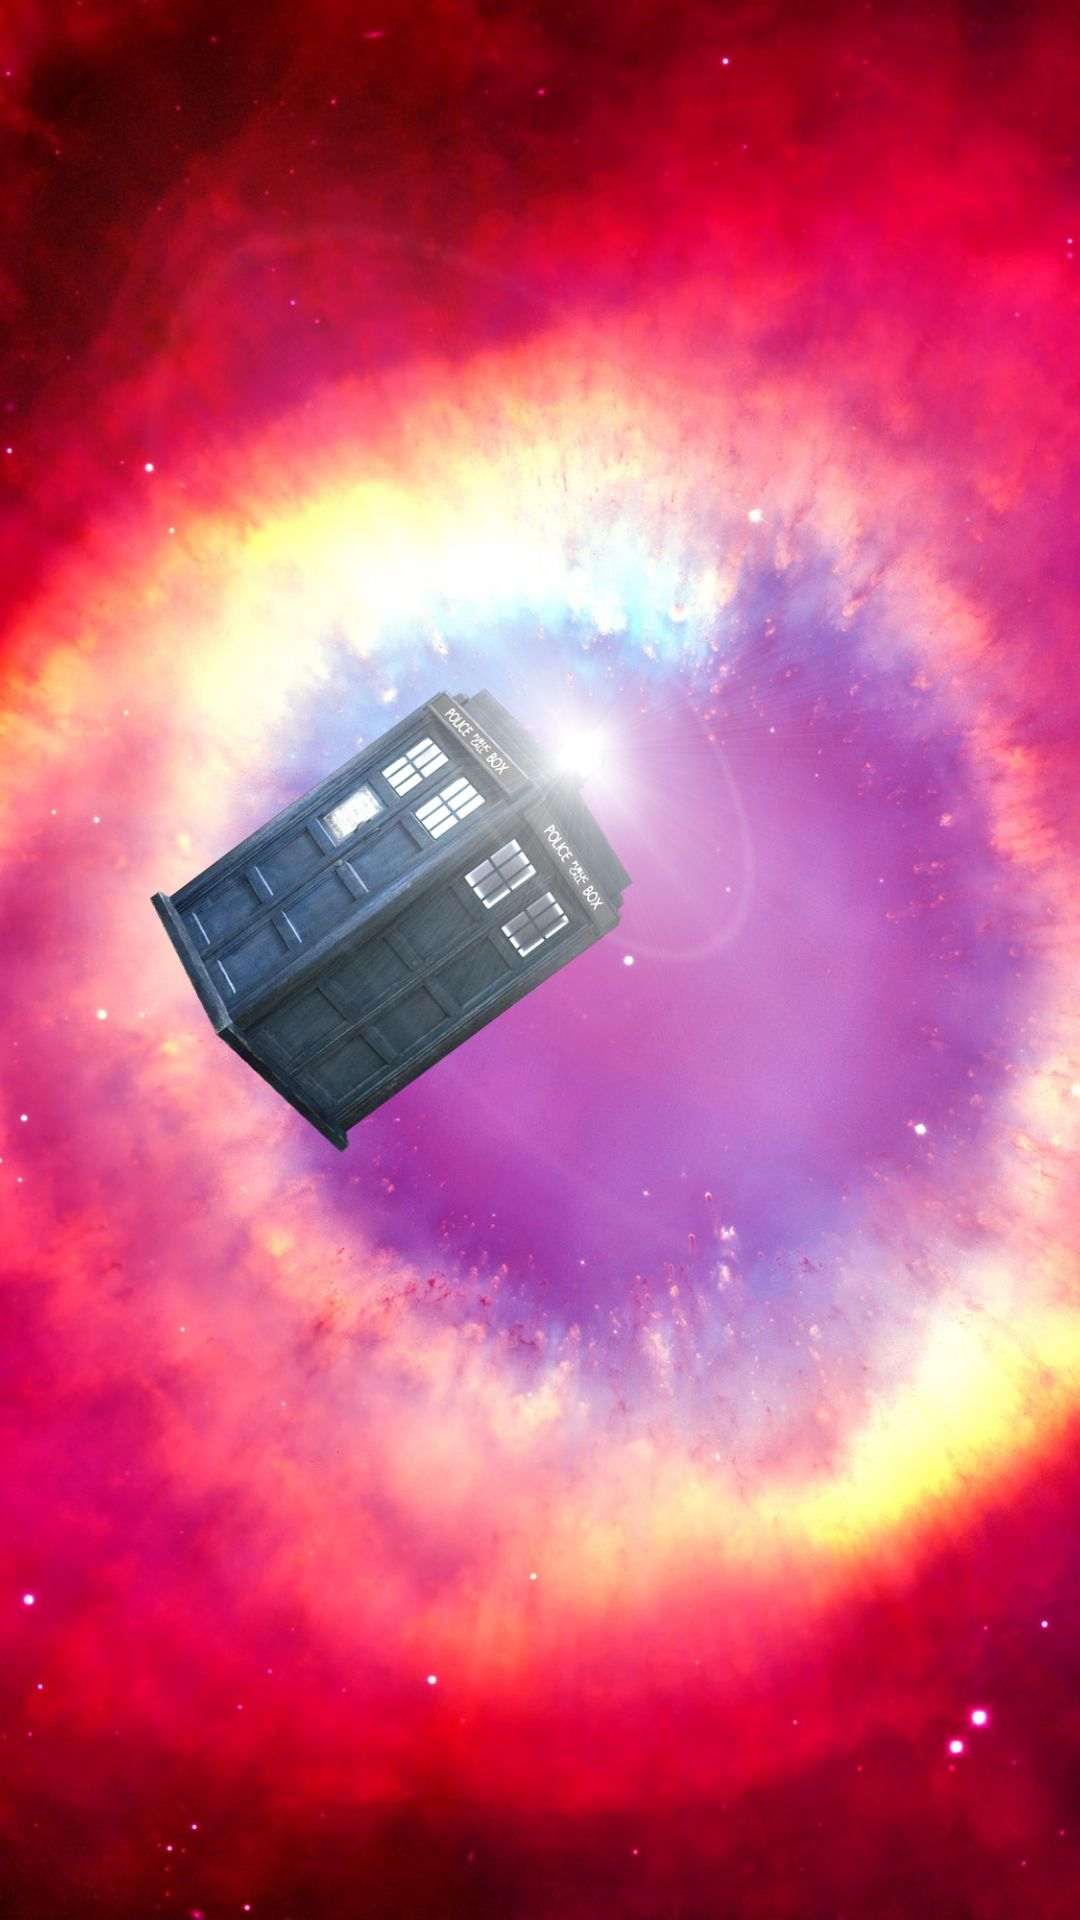 Doctor Who Background Image Doctor Who Background Image